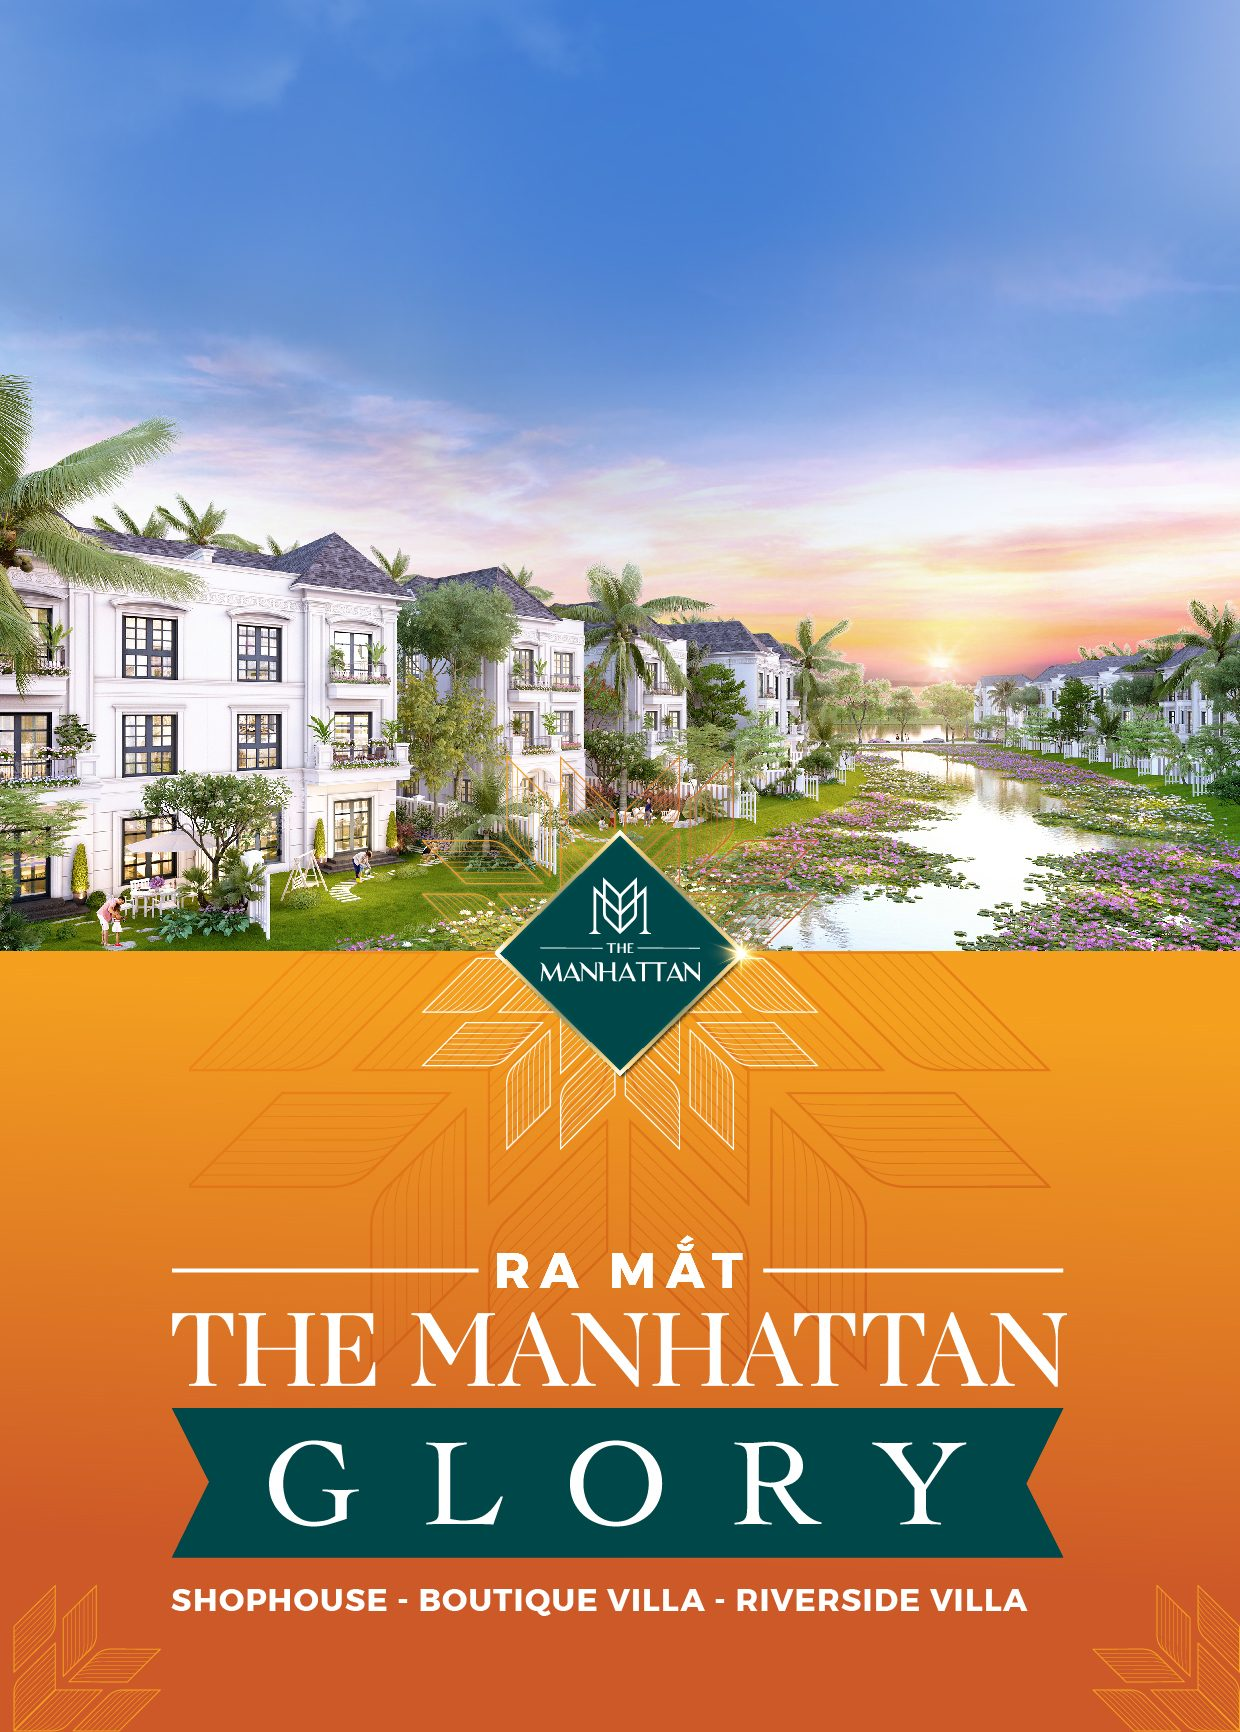 Vinhomes Grand Park chính thức ra mắt The Manhattan Glory